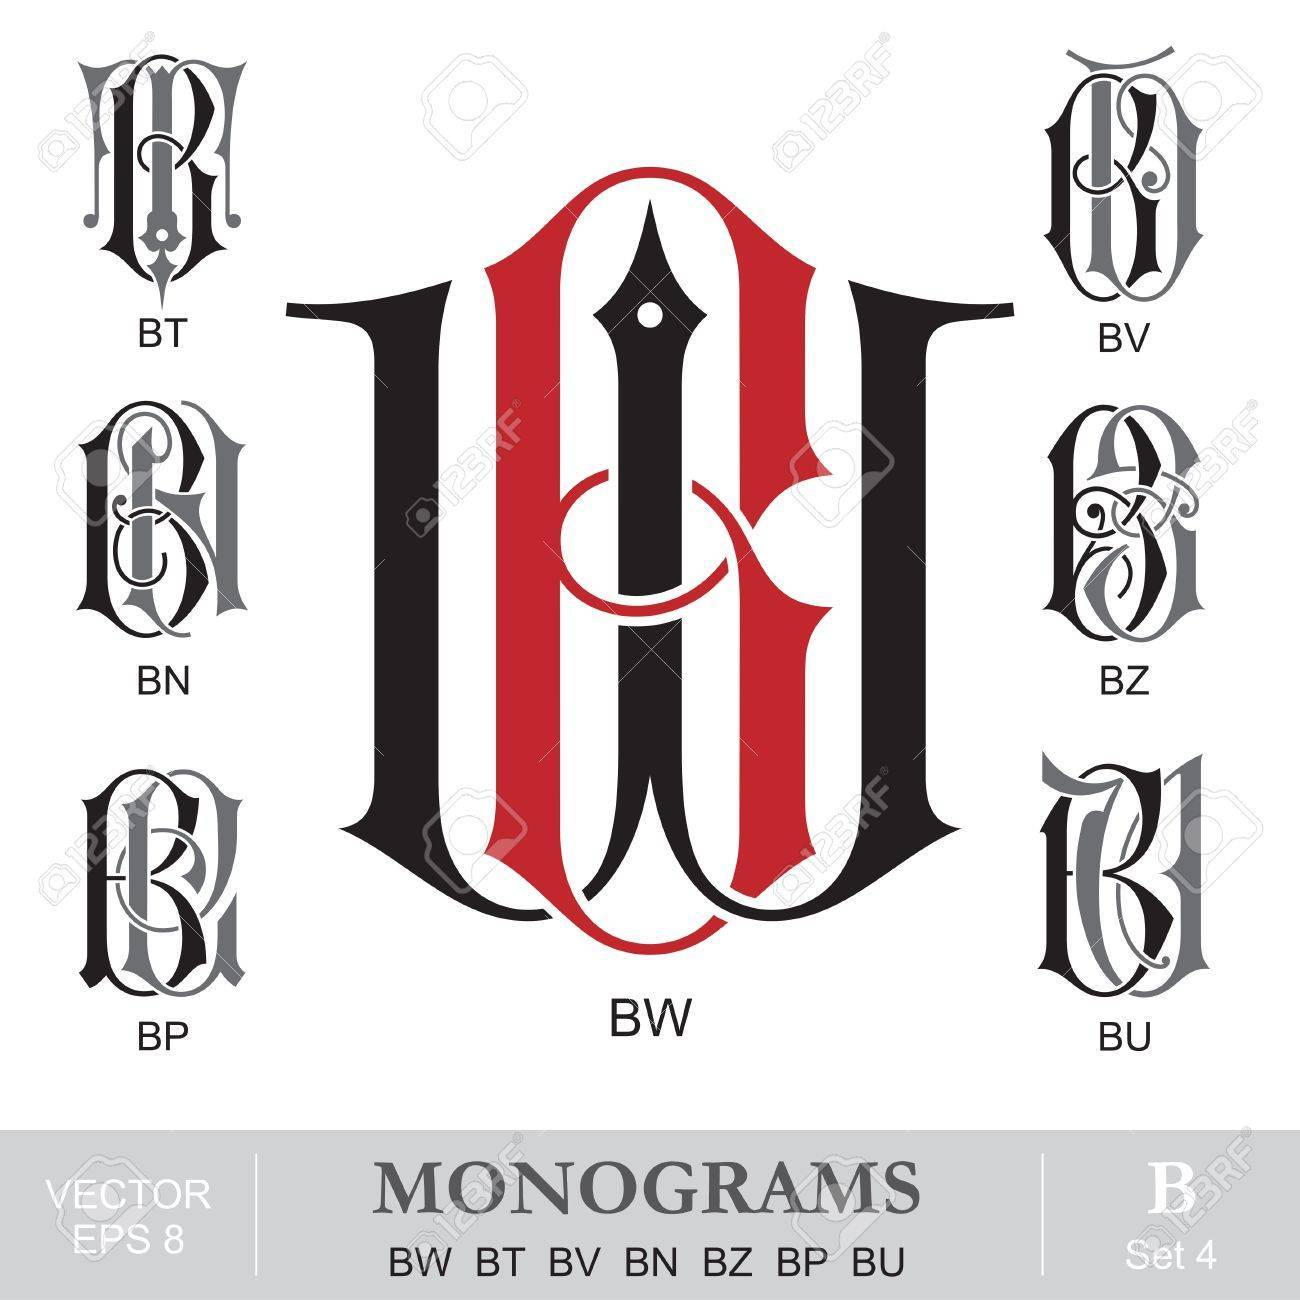 Vintage Monograms Bw Bt Bv Bn Bz Bp Bu Royalty Free Cliparts Vectors And Stock Illustration Image 21576989